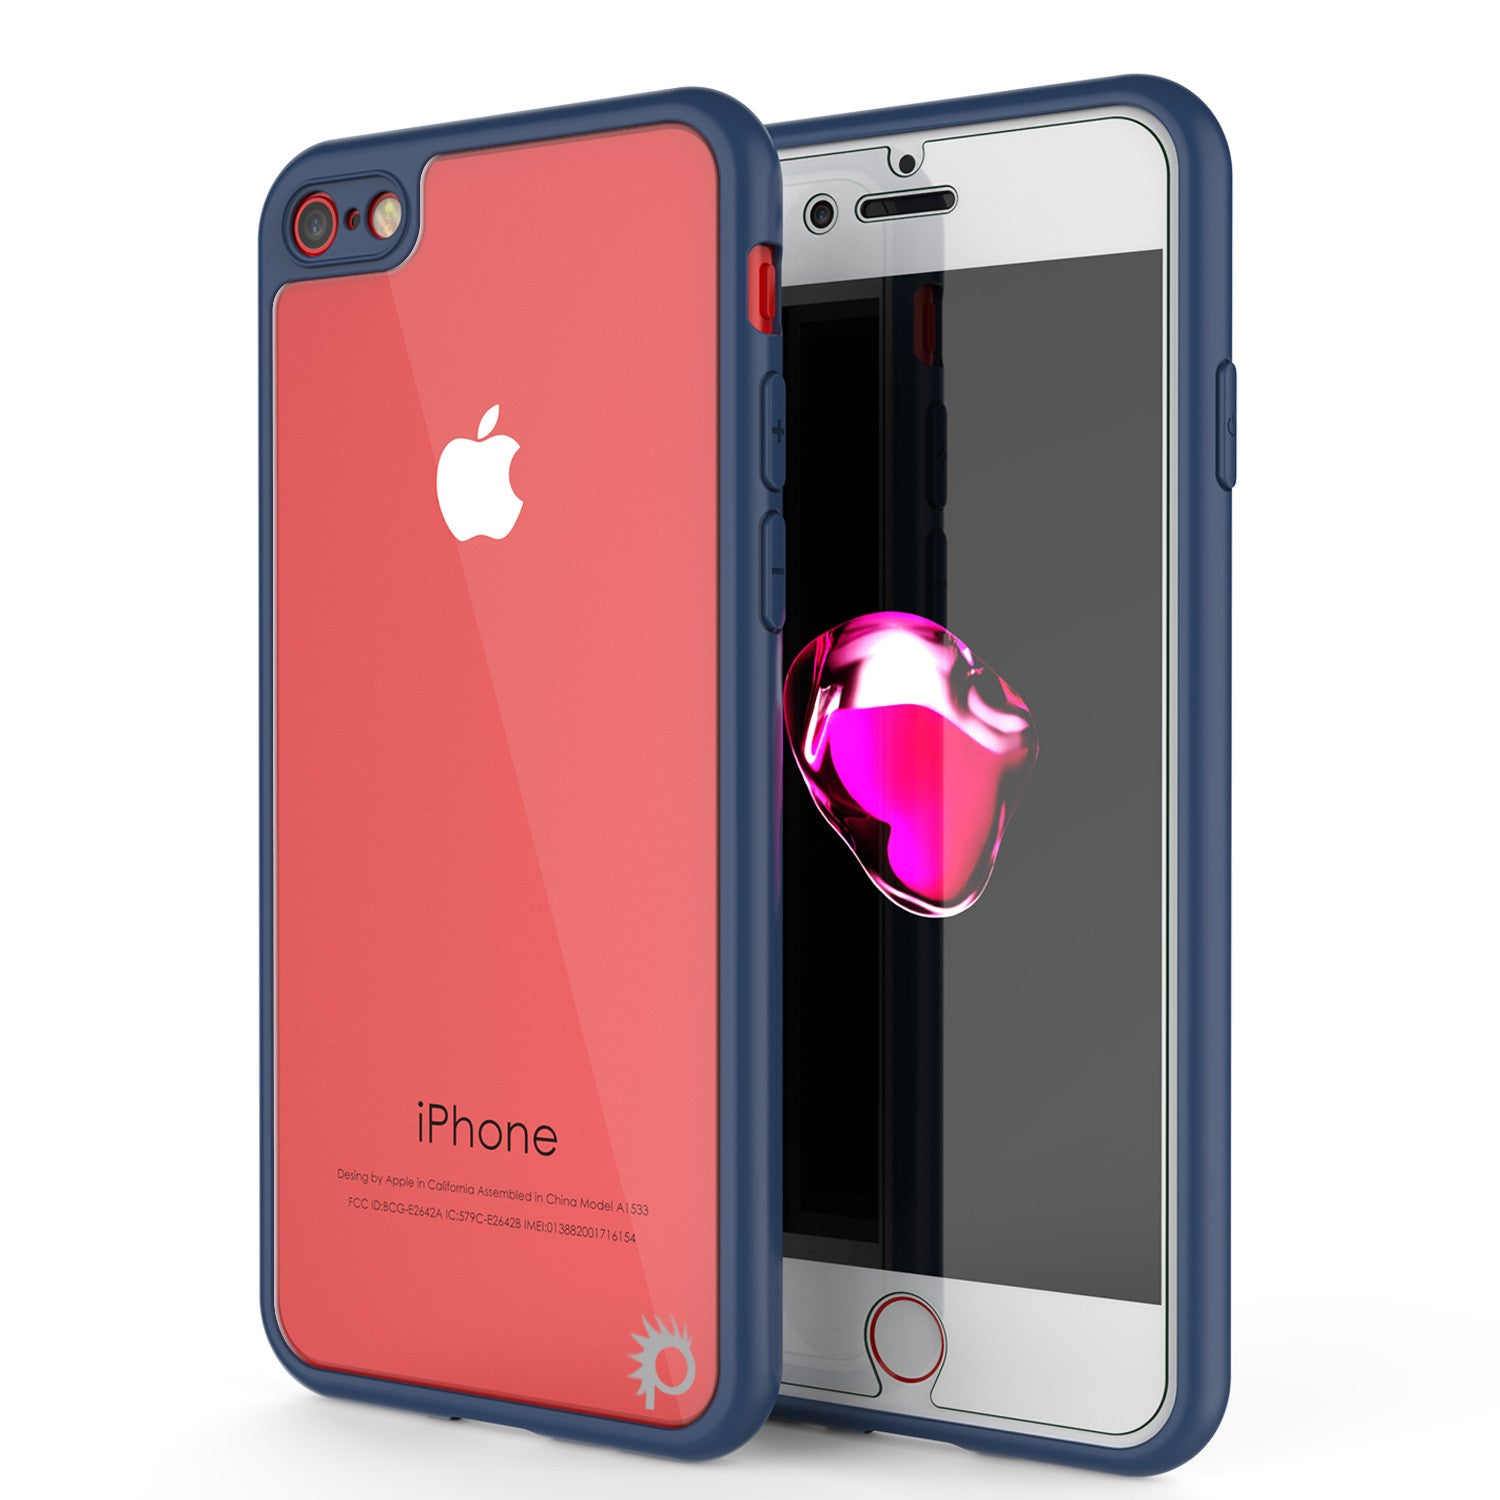 iPhone 7 Case [MASK Series] [NAVY] Full Body Hybrid Dual Layer TPU Cover W/ protective Tempered Glass Screen Protector